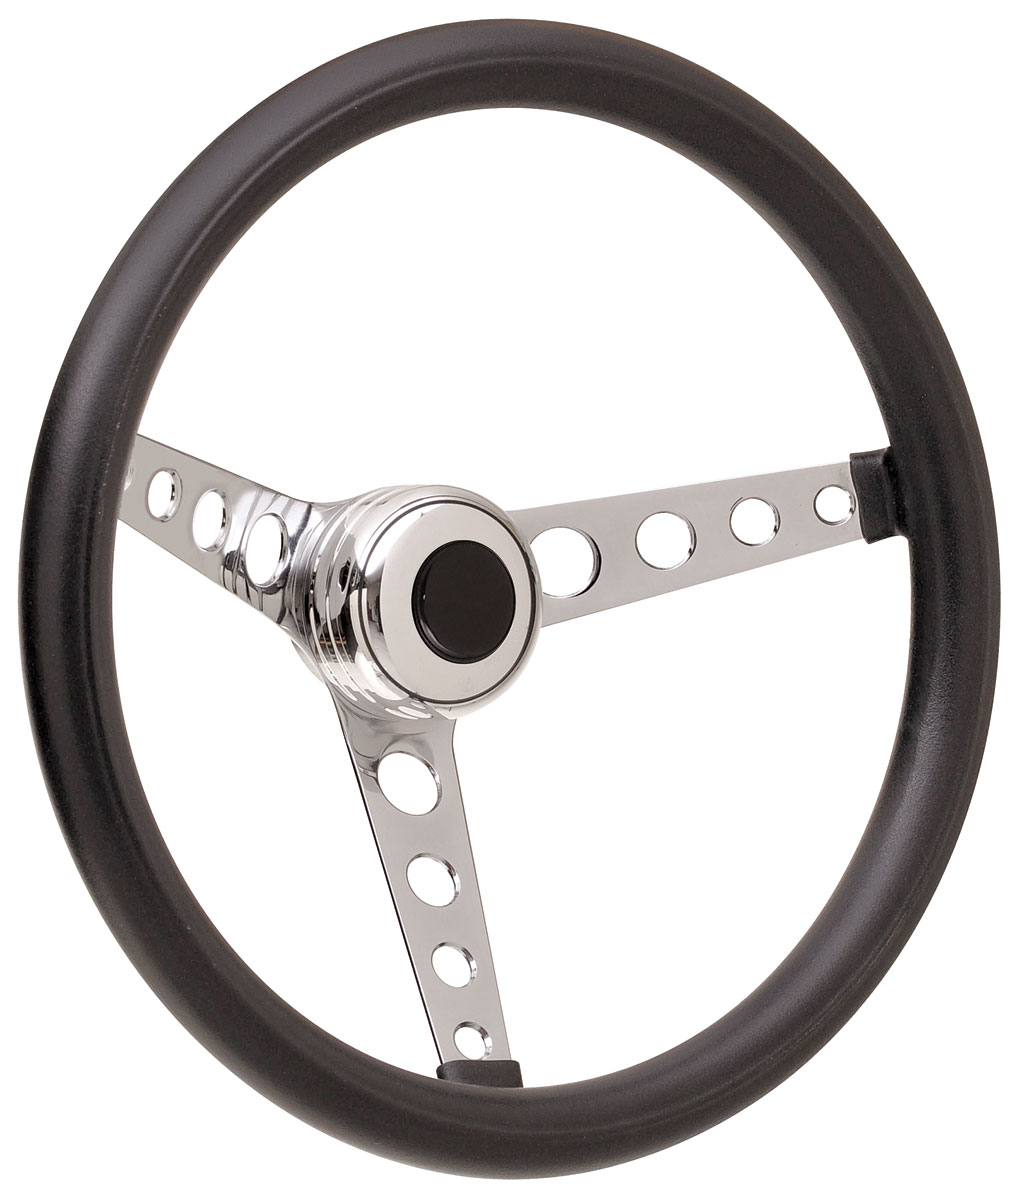 Photo of Steering Wheel Kits, Classic Foam Tall Cap - Polished with black center, early mount